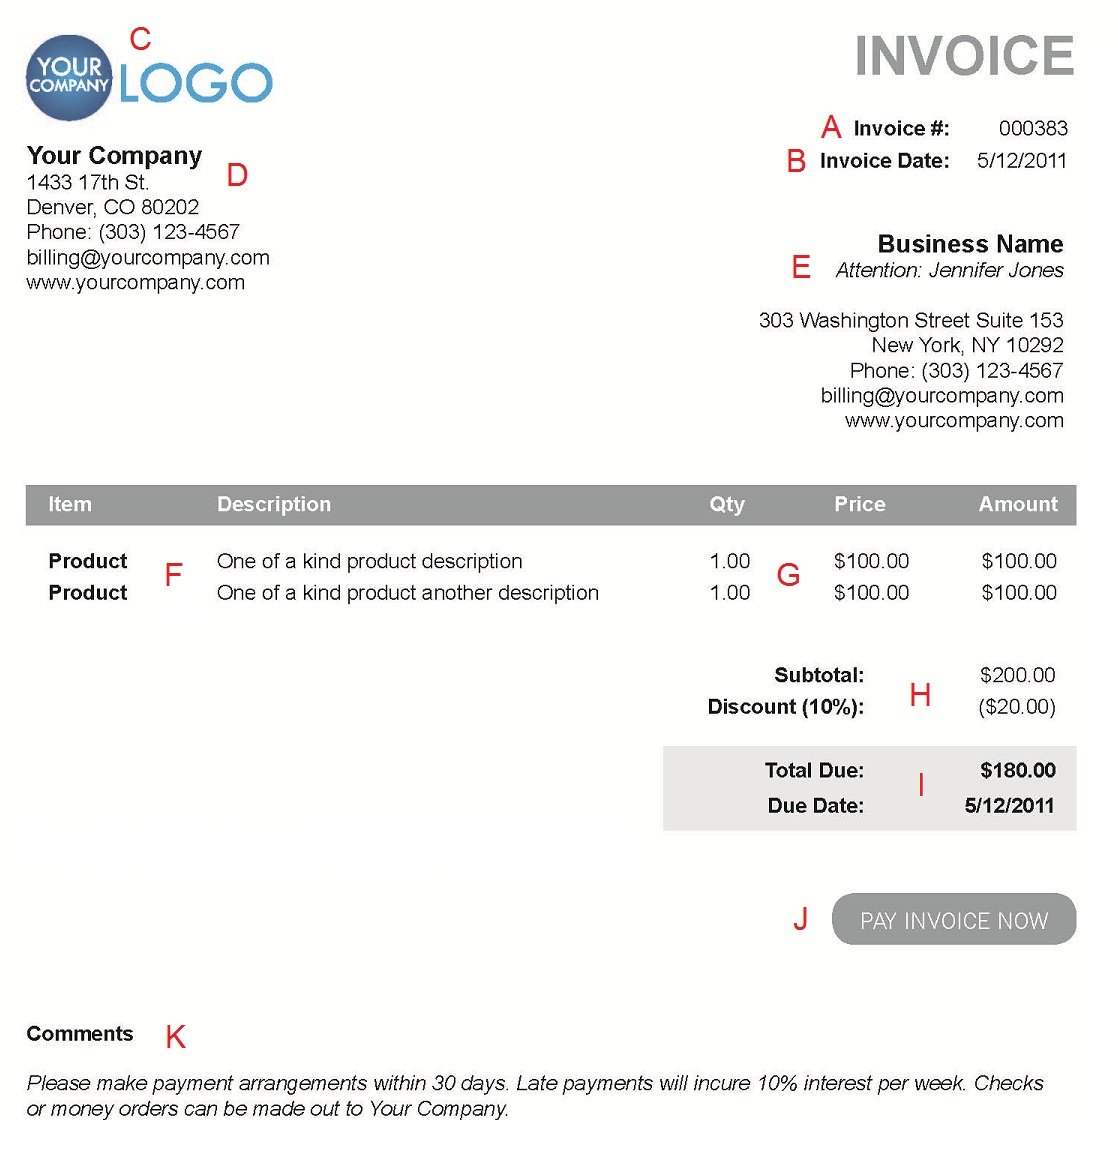 Weirdmailus  Winsome The  Different Sections Of An Electronic Payment Invoice With Remarkable A  With Astounding Importing Invoices Into Quickbooks Also Creat Invoice In Addition Invoice For And  Below Factory Invoice As Well As Carpet Cleaning Invoice Template Additionally Contract Invoice From Paysimplecom With Weirdmailus  Remarkable The  Different Sections Of An Electronic Payment Invoice With Astounding A  And Winsome Importing Invoices Into Quickbooks Also Creat Invoice In Addition Invoice For From Paysimplecom